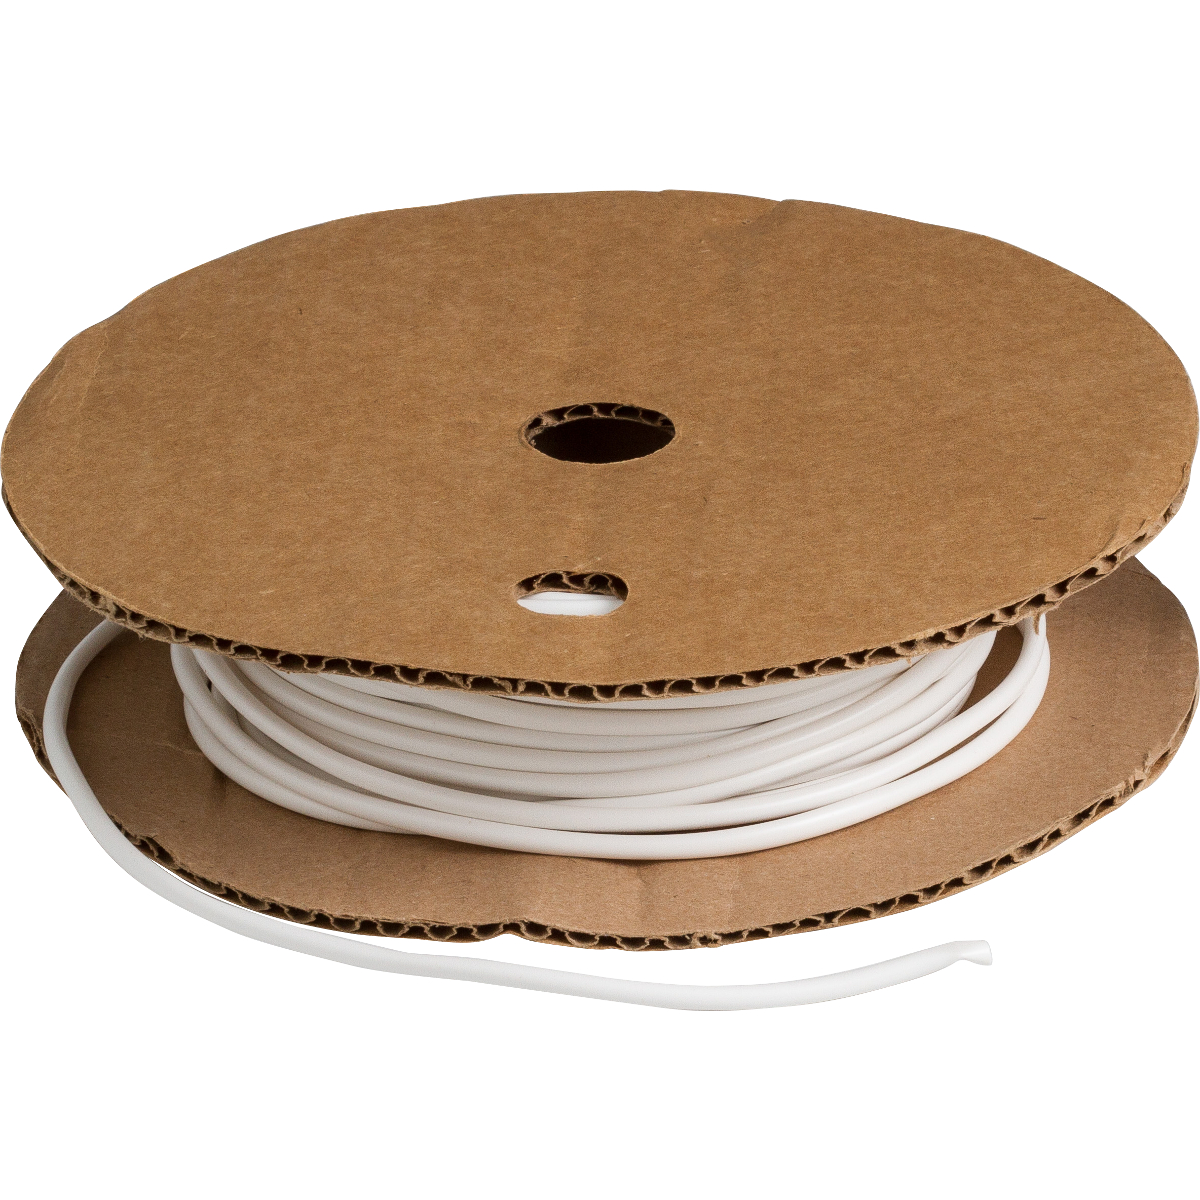 Brady® BradyMark™ PVC-7 Hot Stamping Heat Shrink Tubing, 0.158 in ID Expanded, 0.144 in ID Recovered, 100 ft L, Vinyl, White